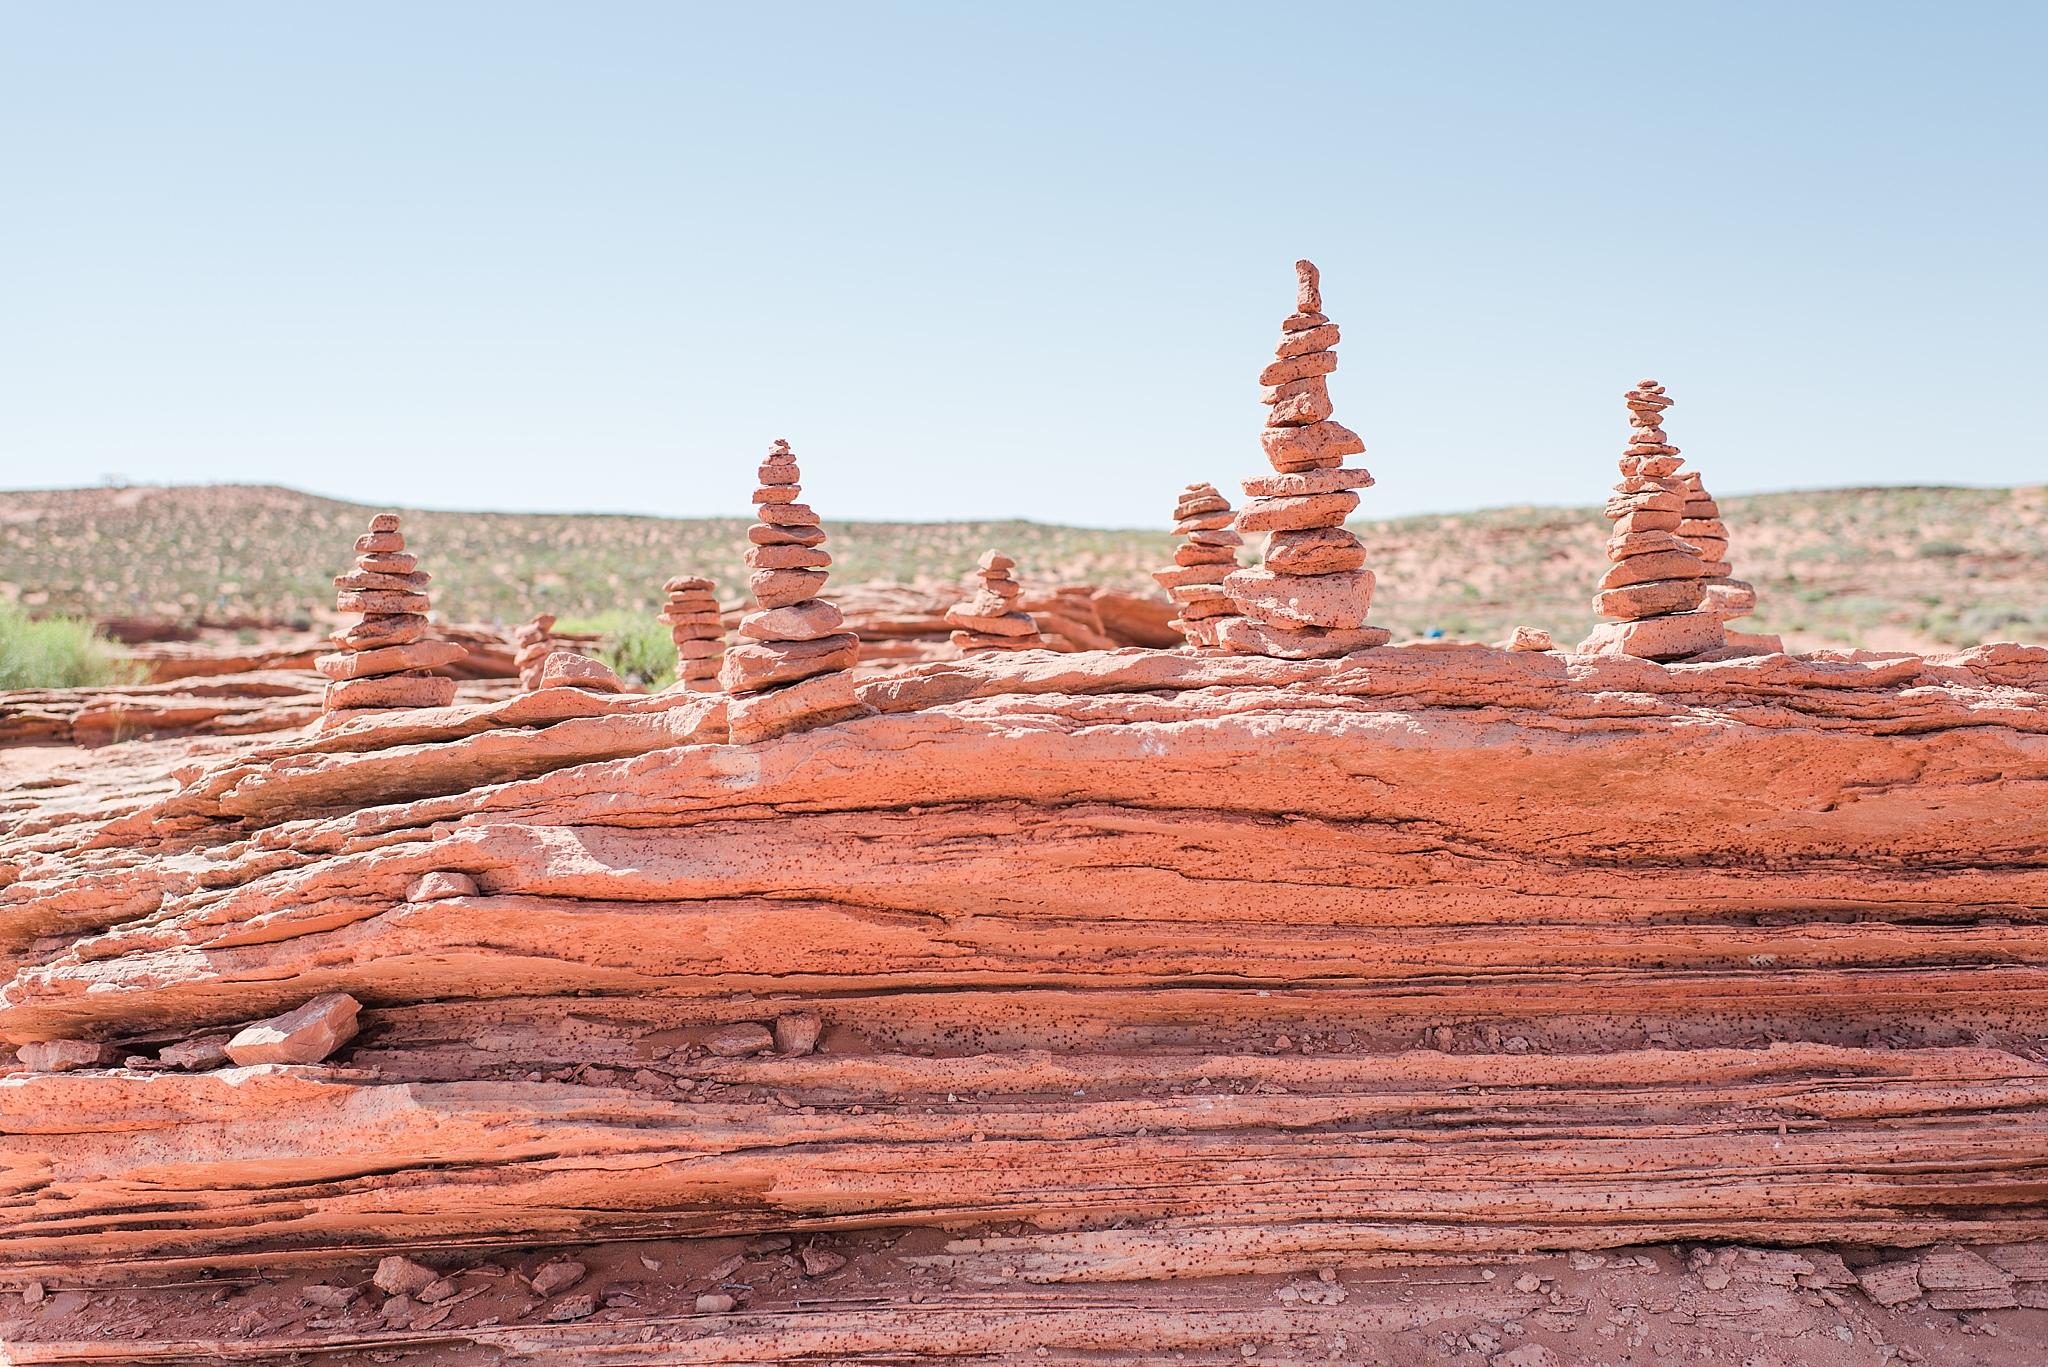 Rock formations at Horseshoe Bend site near Page, Arizona. Travel photo by Jade Min Photography.